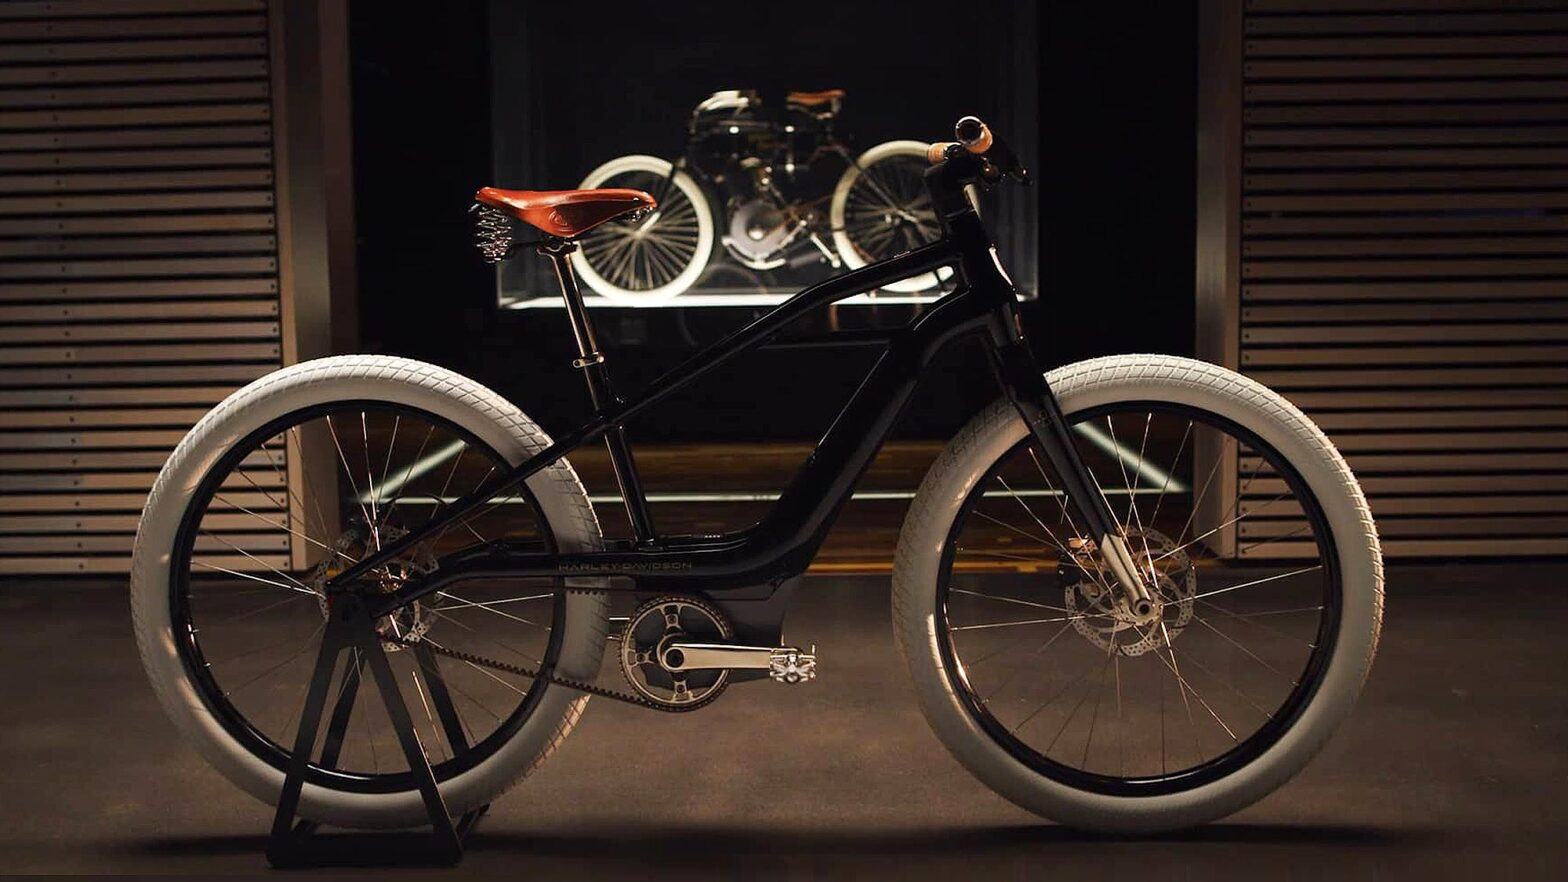 Serial 1 eBicycles Powered By Harley-Davidson